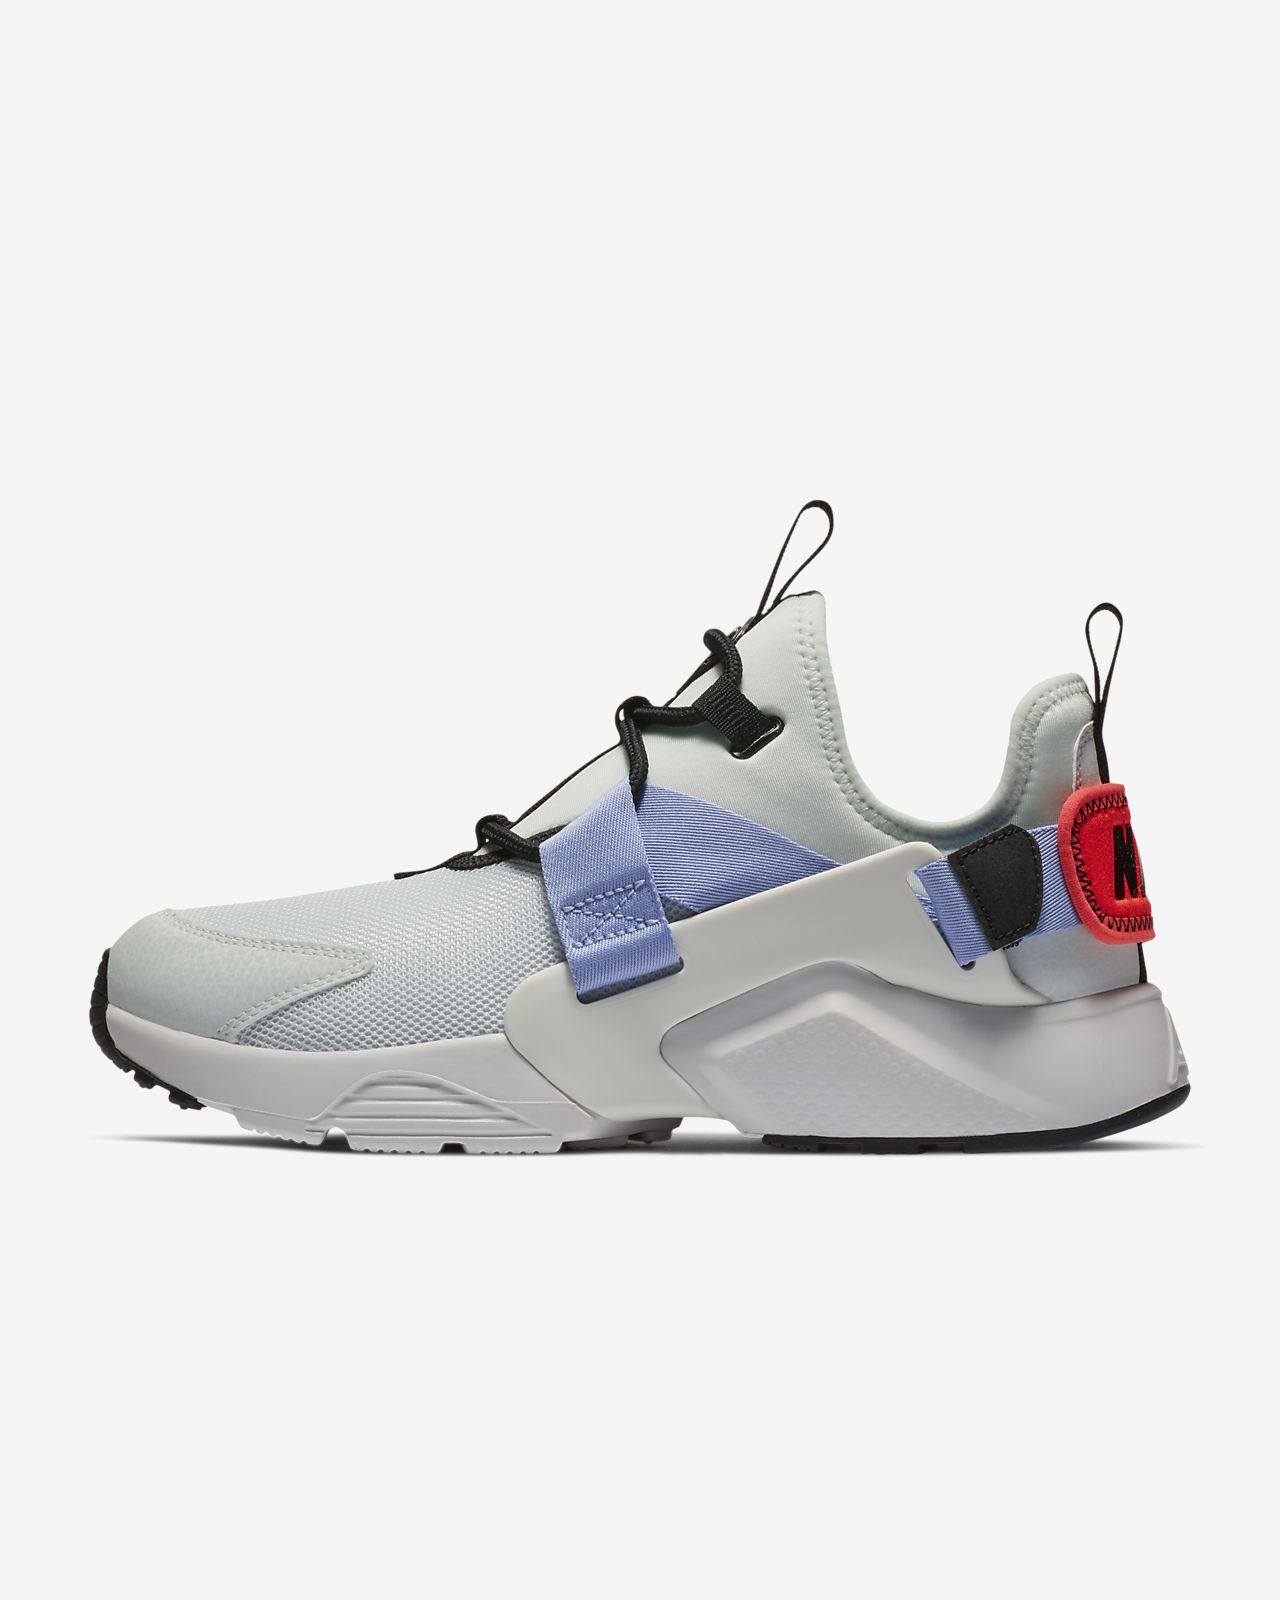 5f8f71a6d75c Nike Air Huarache City Low Women s Shoe. Nike.com